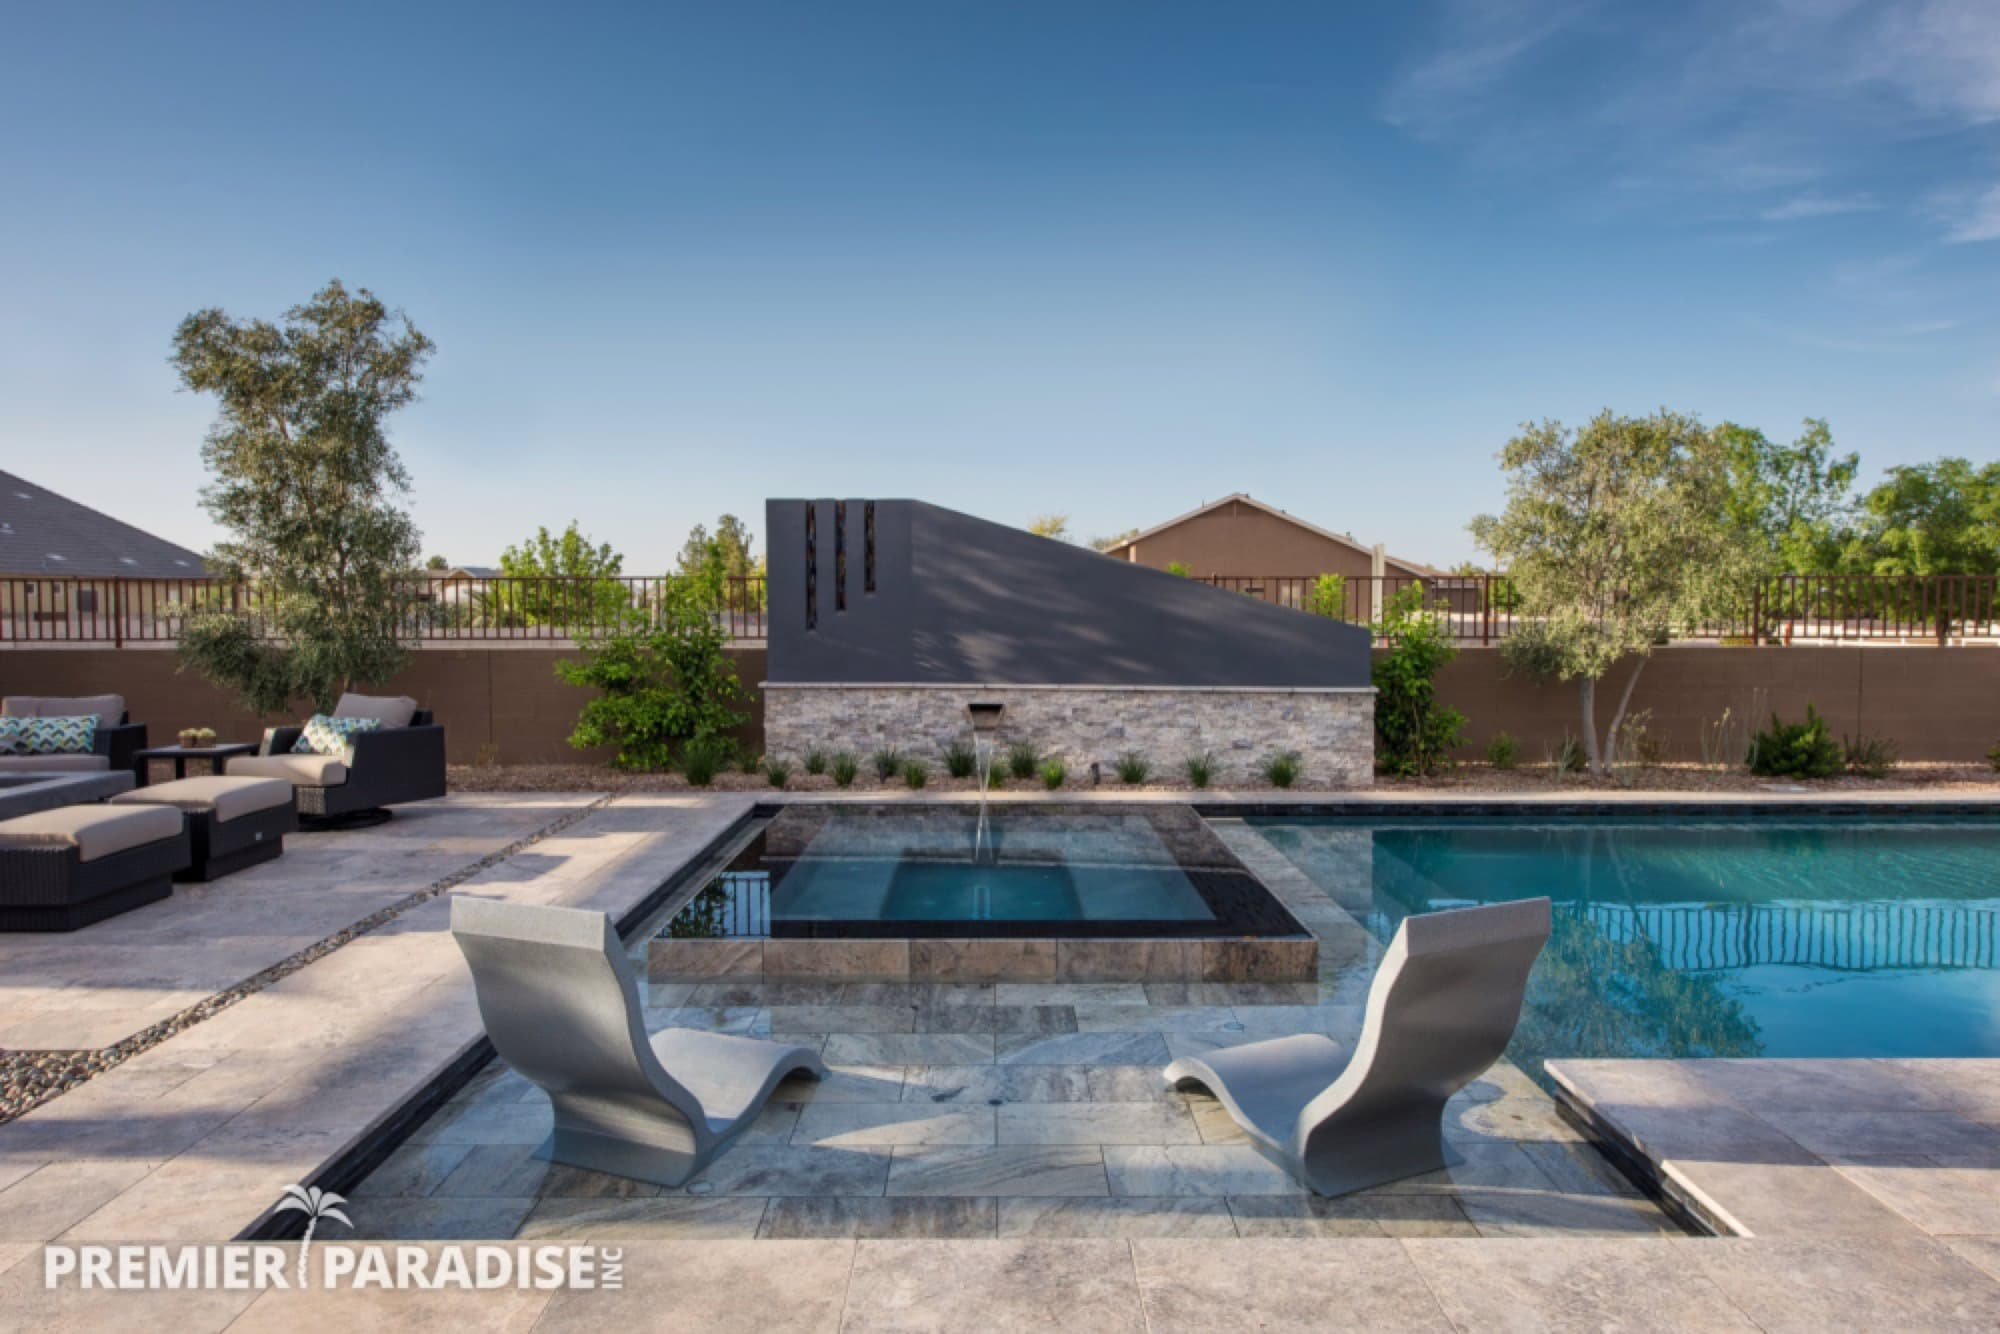 Modern Perimeter Overflow Spa & Luxury Outdoor Living ... on Outdoor Living Spa id=83118